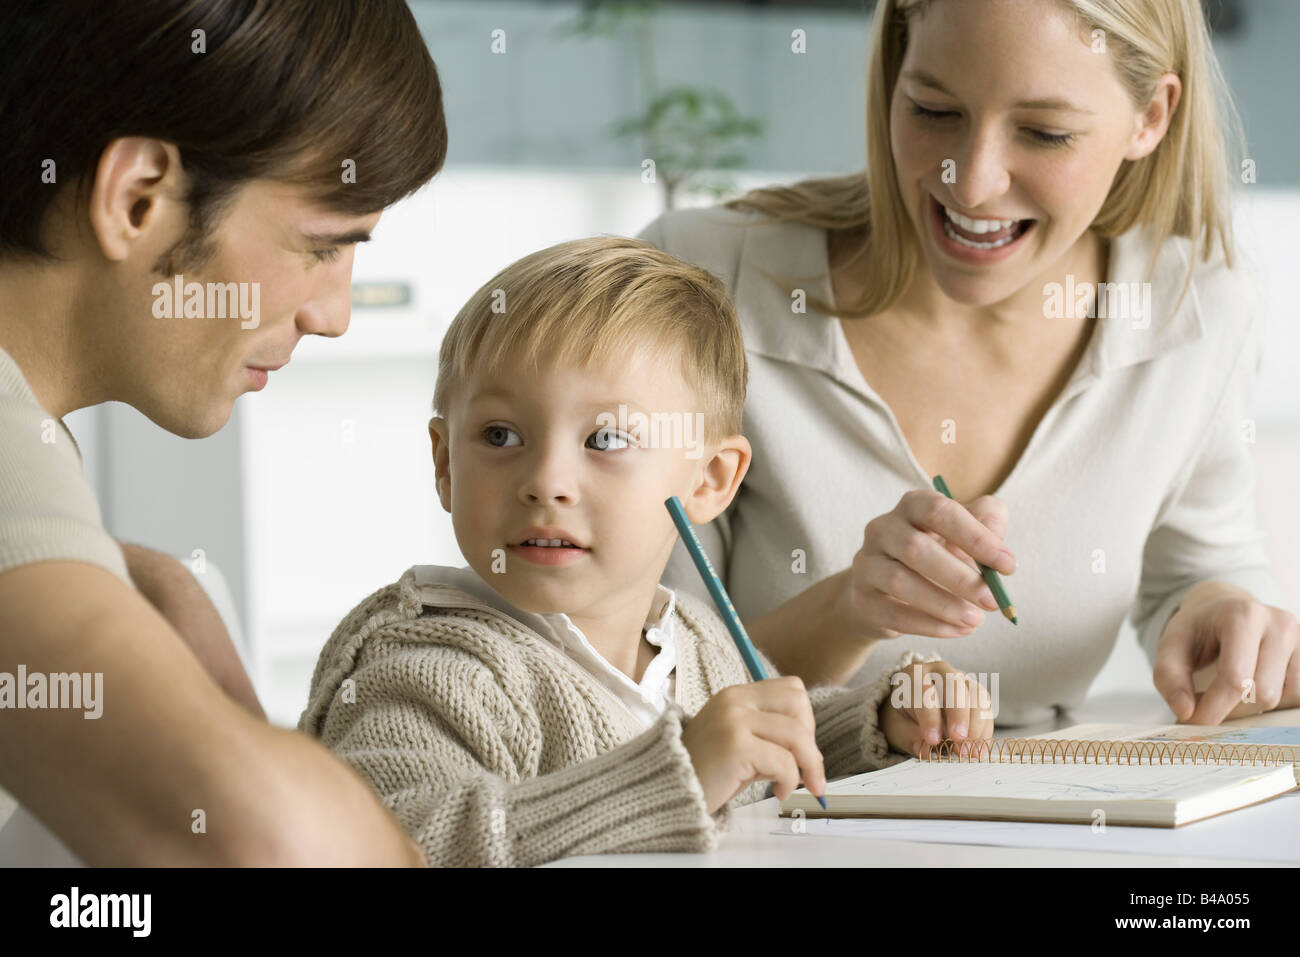 Little boy coloring at table with parents, looking at father - Stock Image